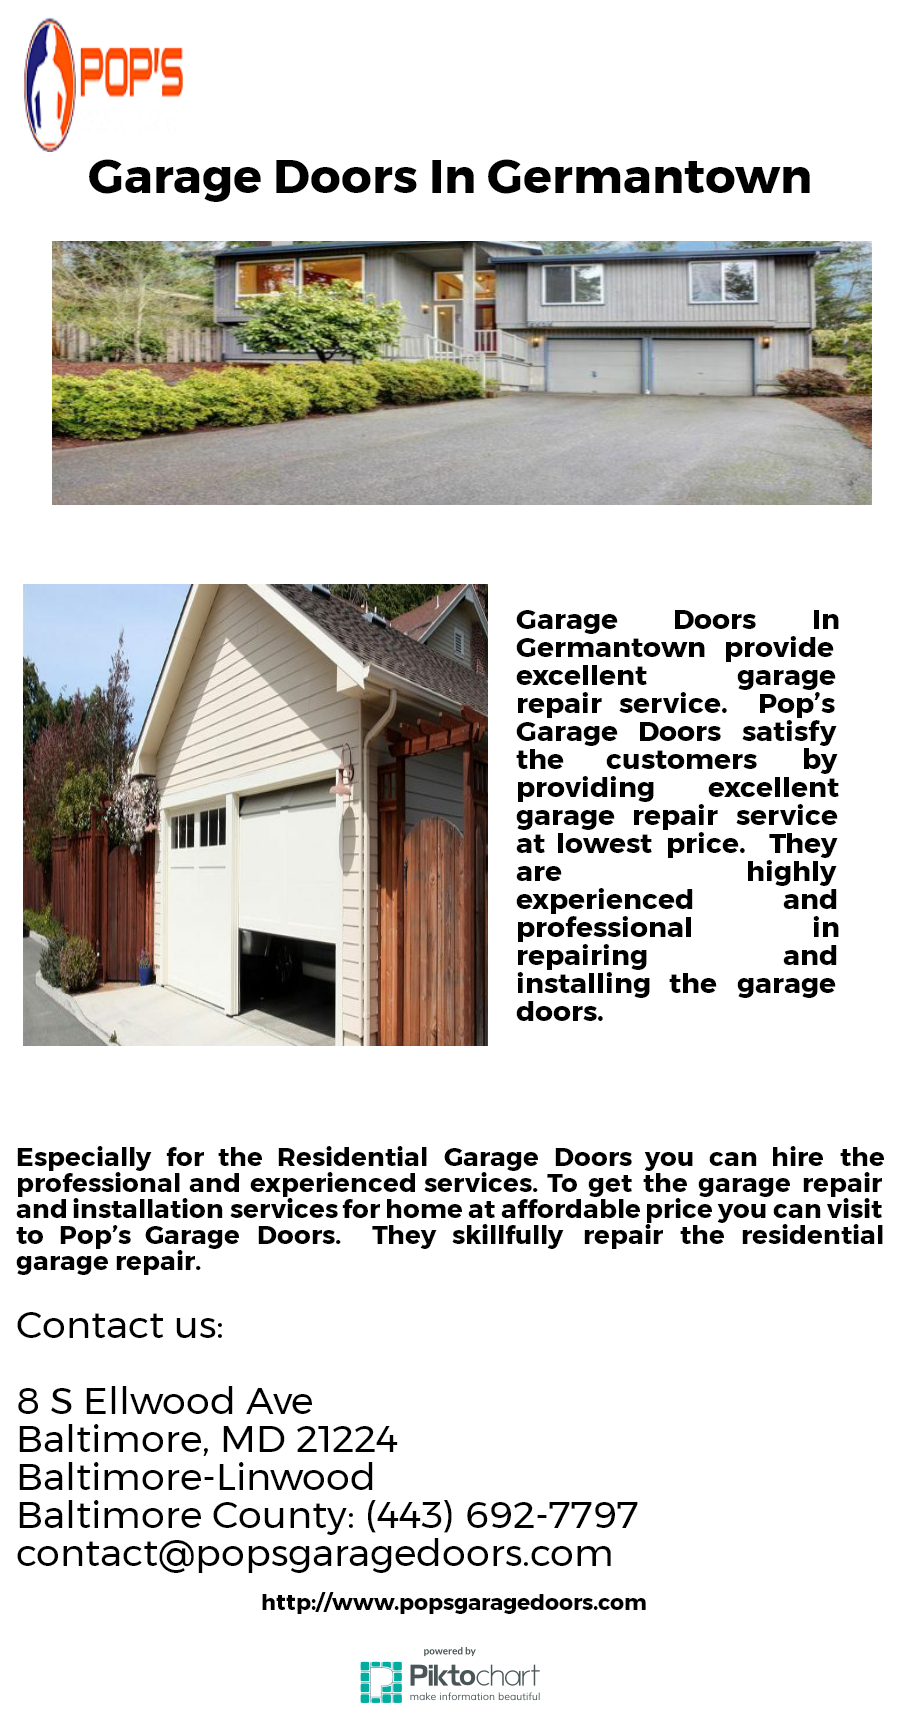 To Get The Service Of Garage Door Services Germantown You Can Contact To The Well Experienced Pop S Garage Doors Garage Service Door Residential Garage Doors